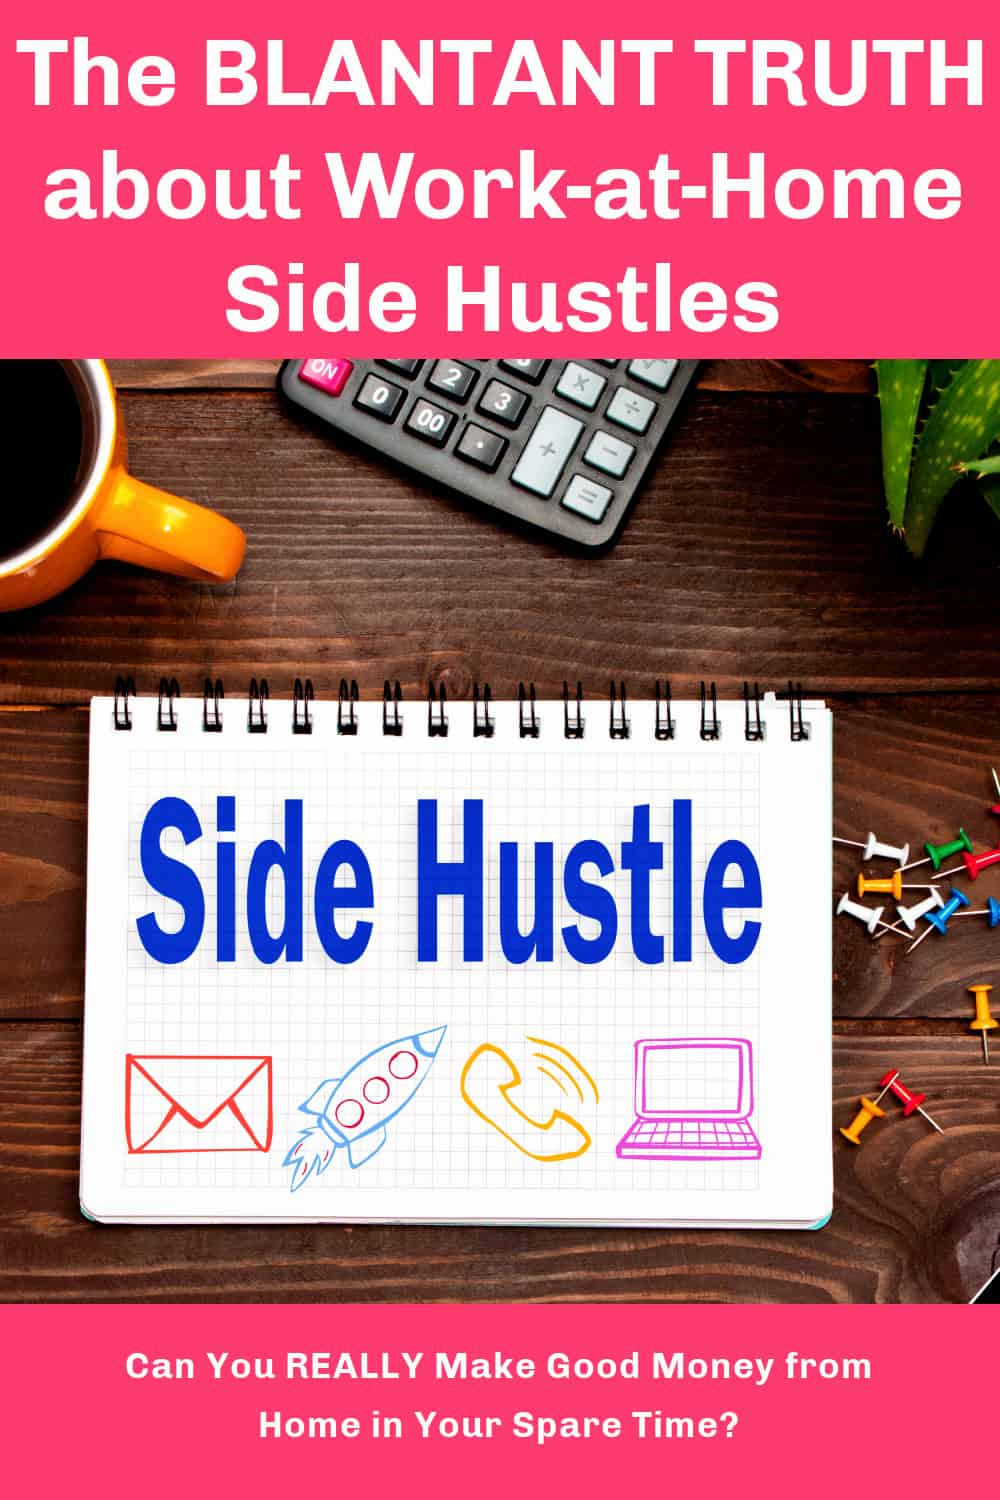 Can You REALLY Make $1,000 a Month From Work-at-Home Side Hustles?